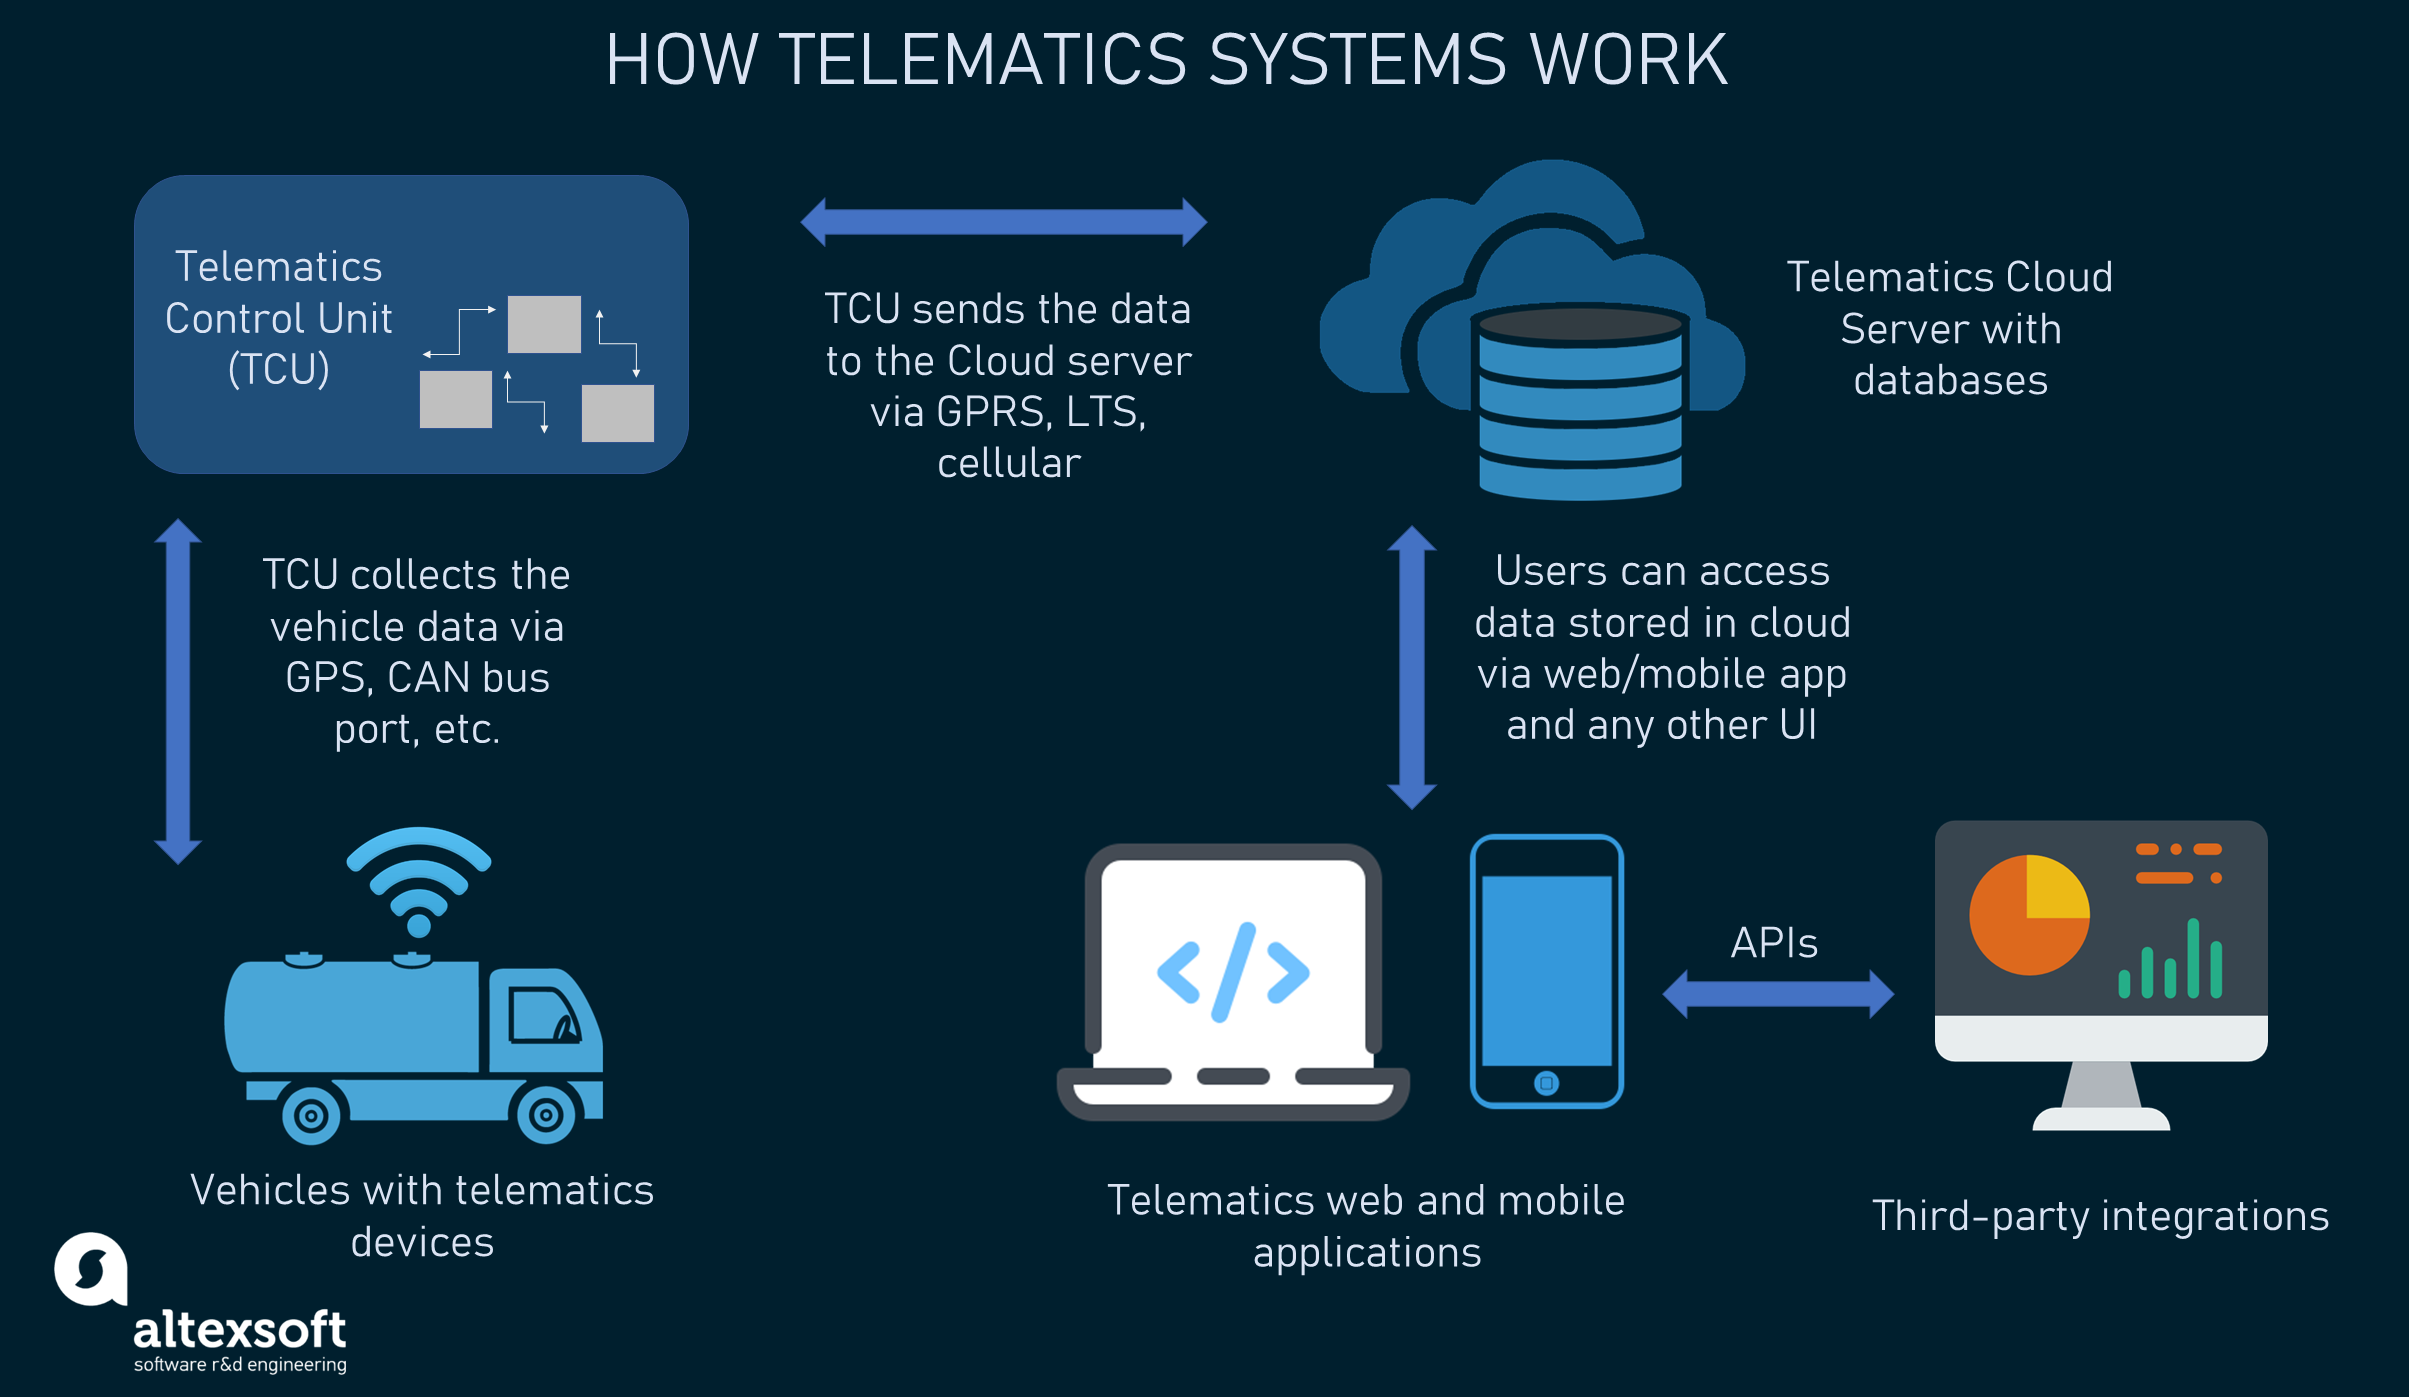 The working principle of telematics systems